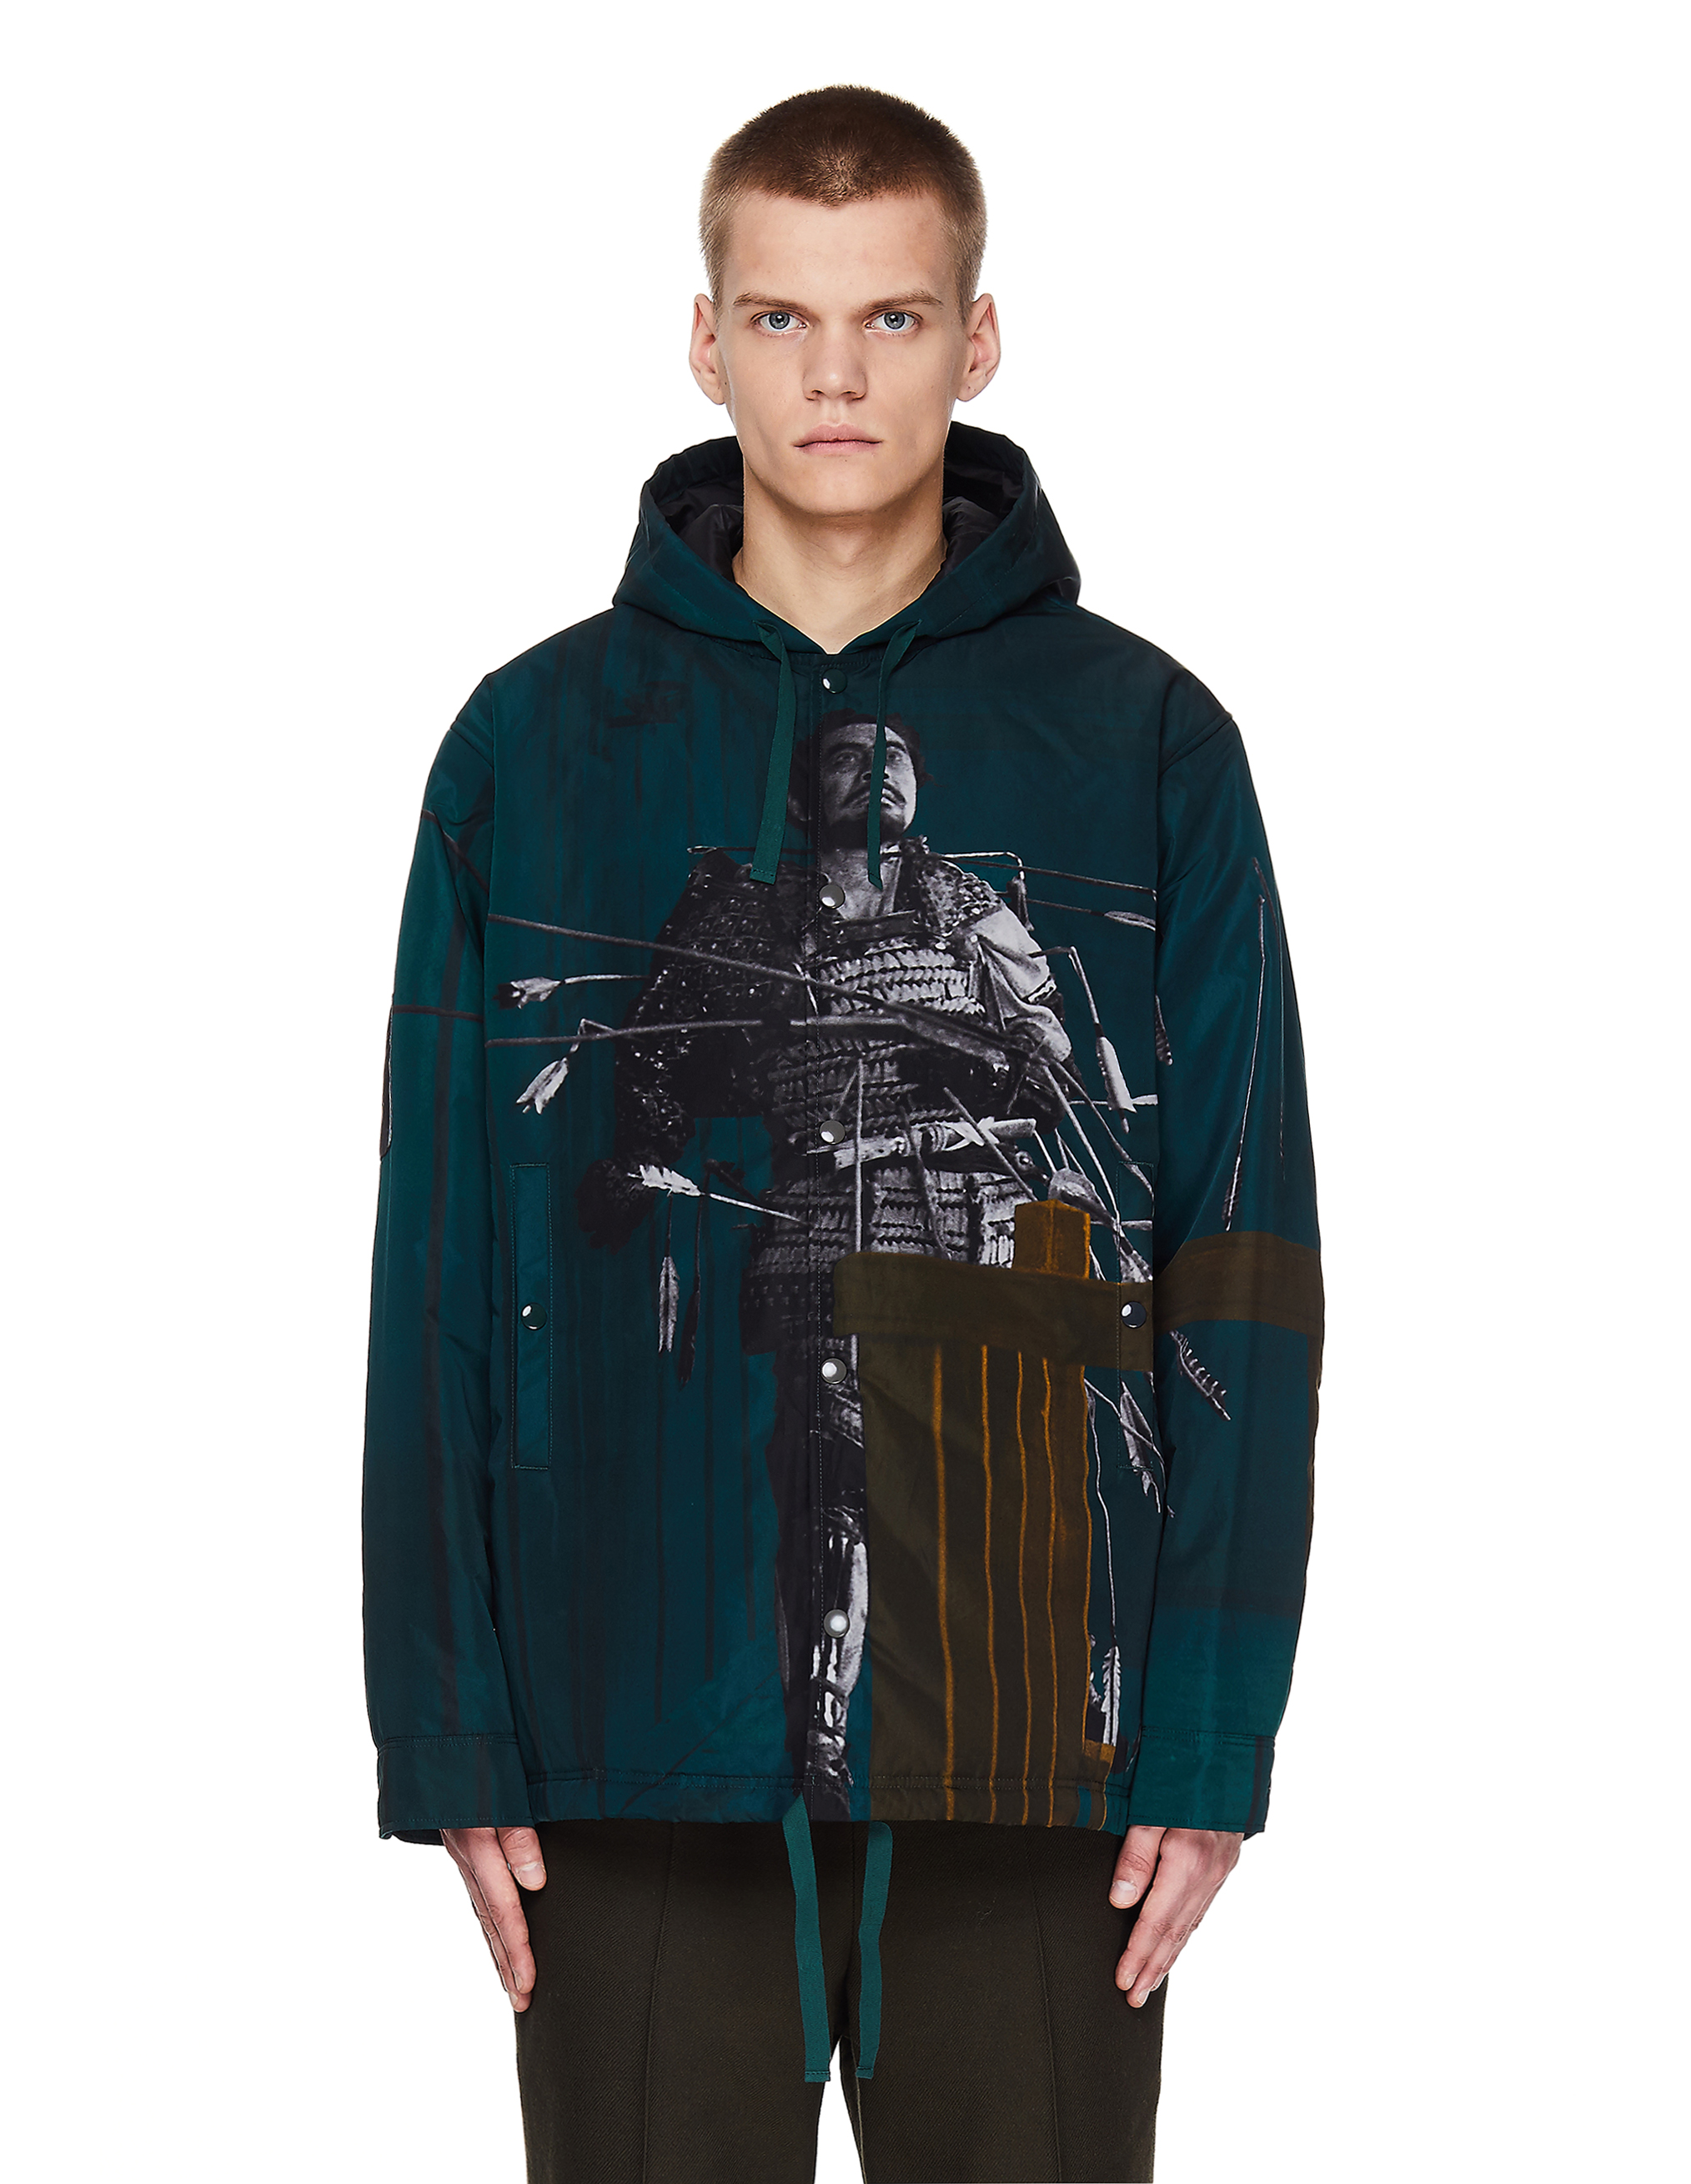 Undercover Printed Hooded Jacket